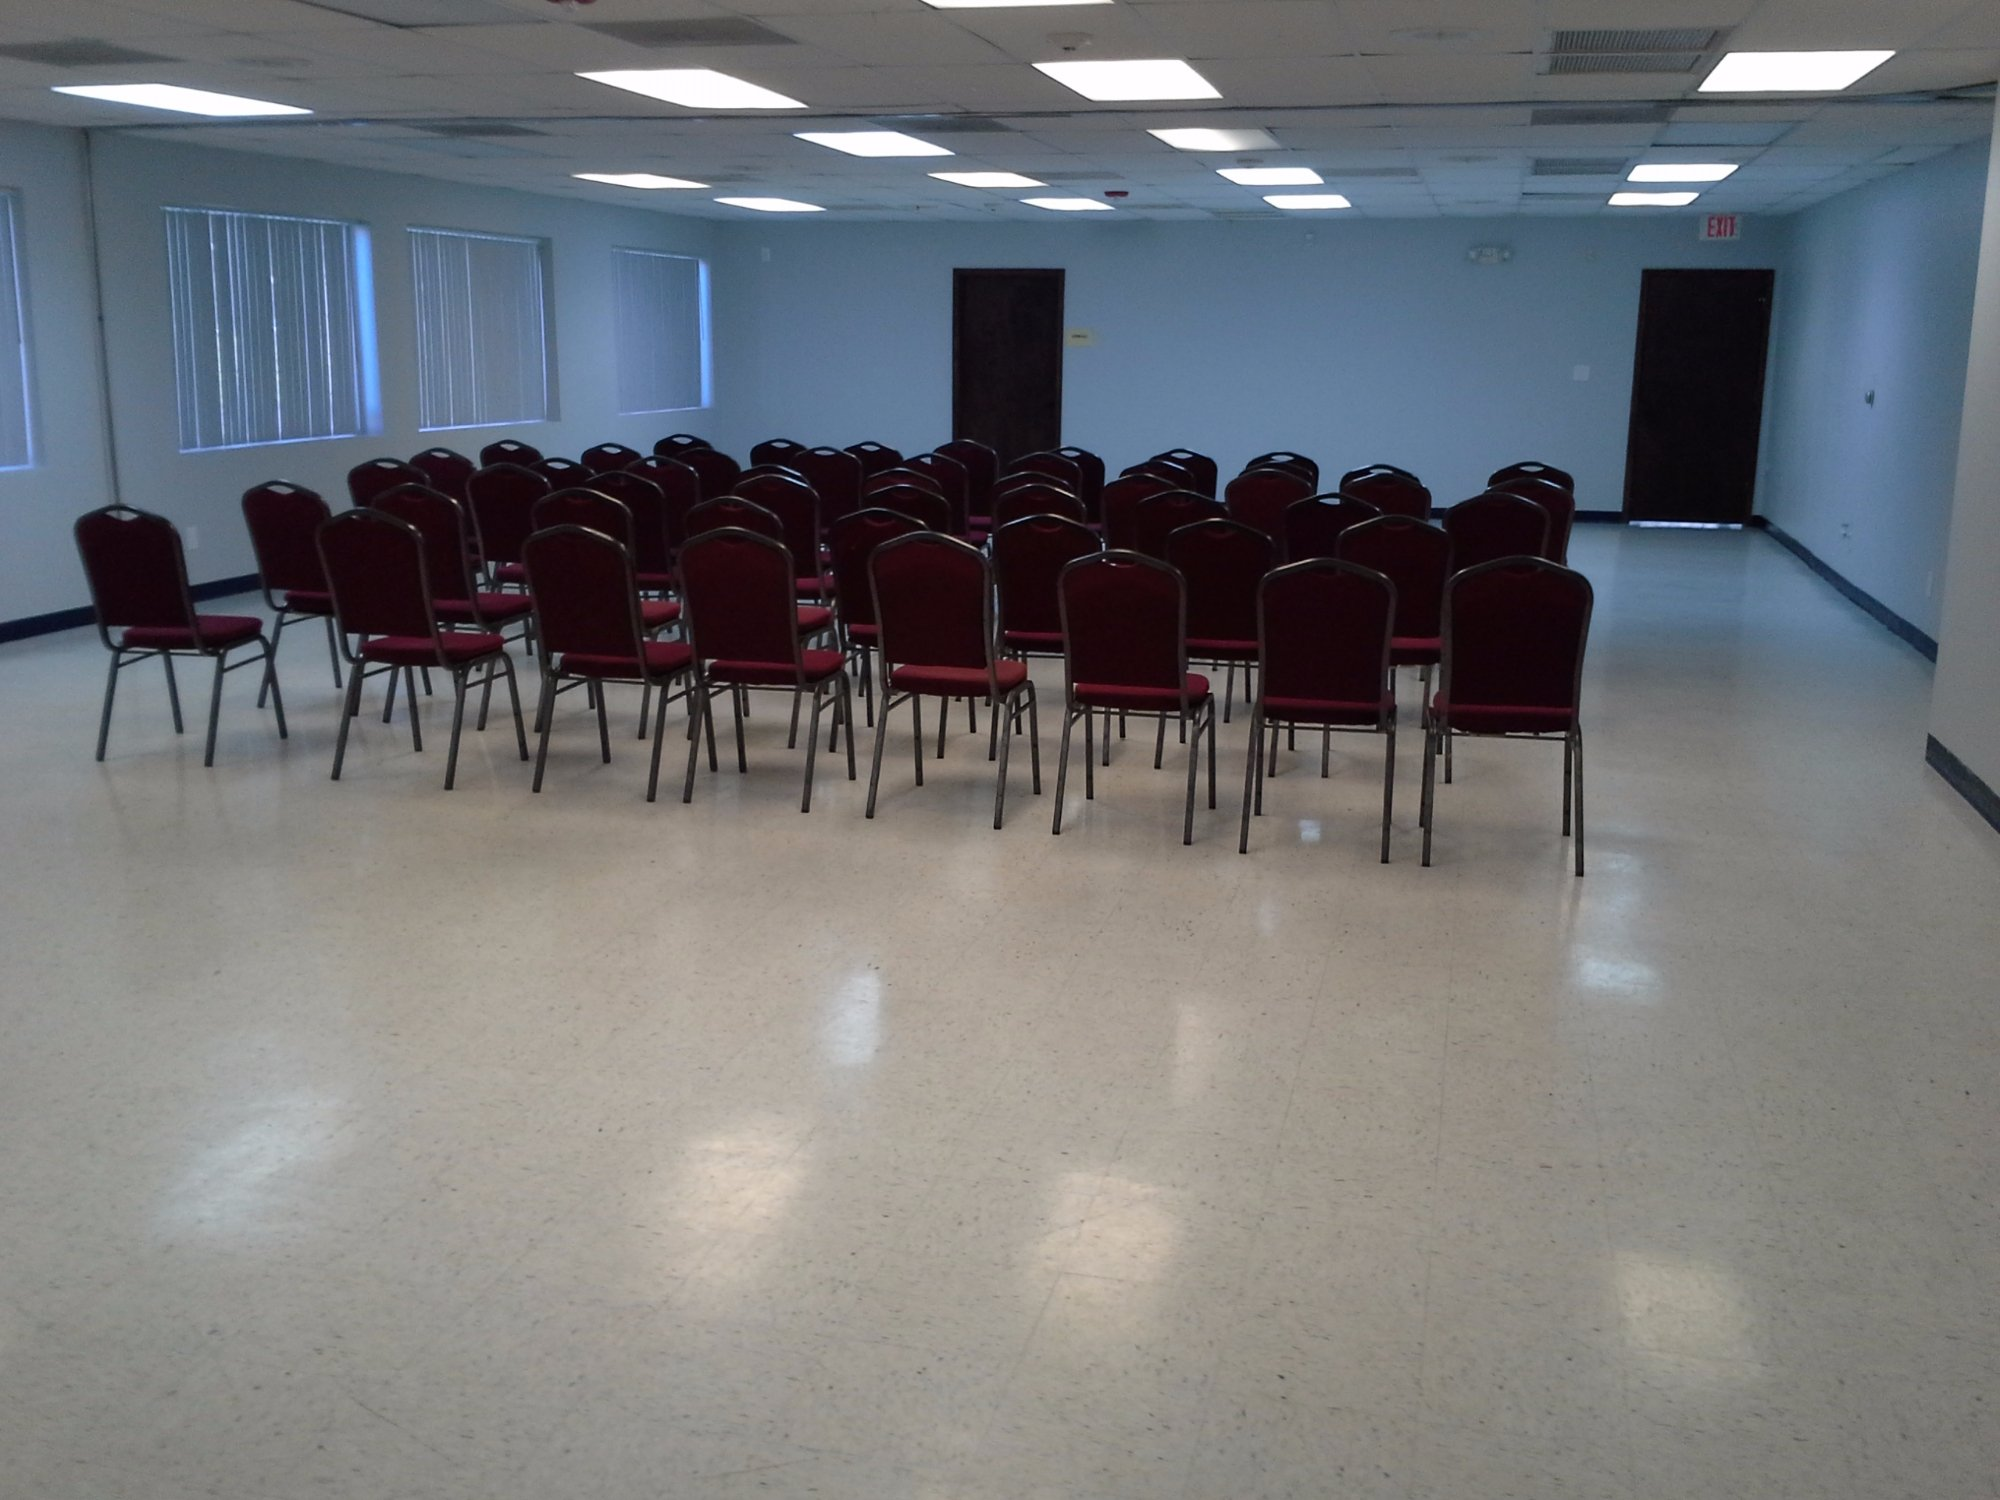 The Primus Center Executive Suites   Co-Working   Shared Workspace   Conference Center